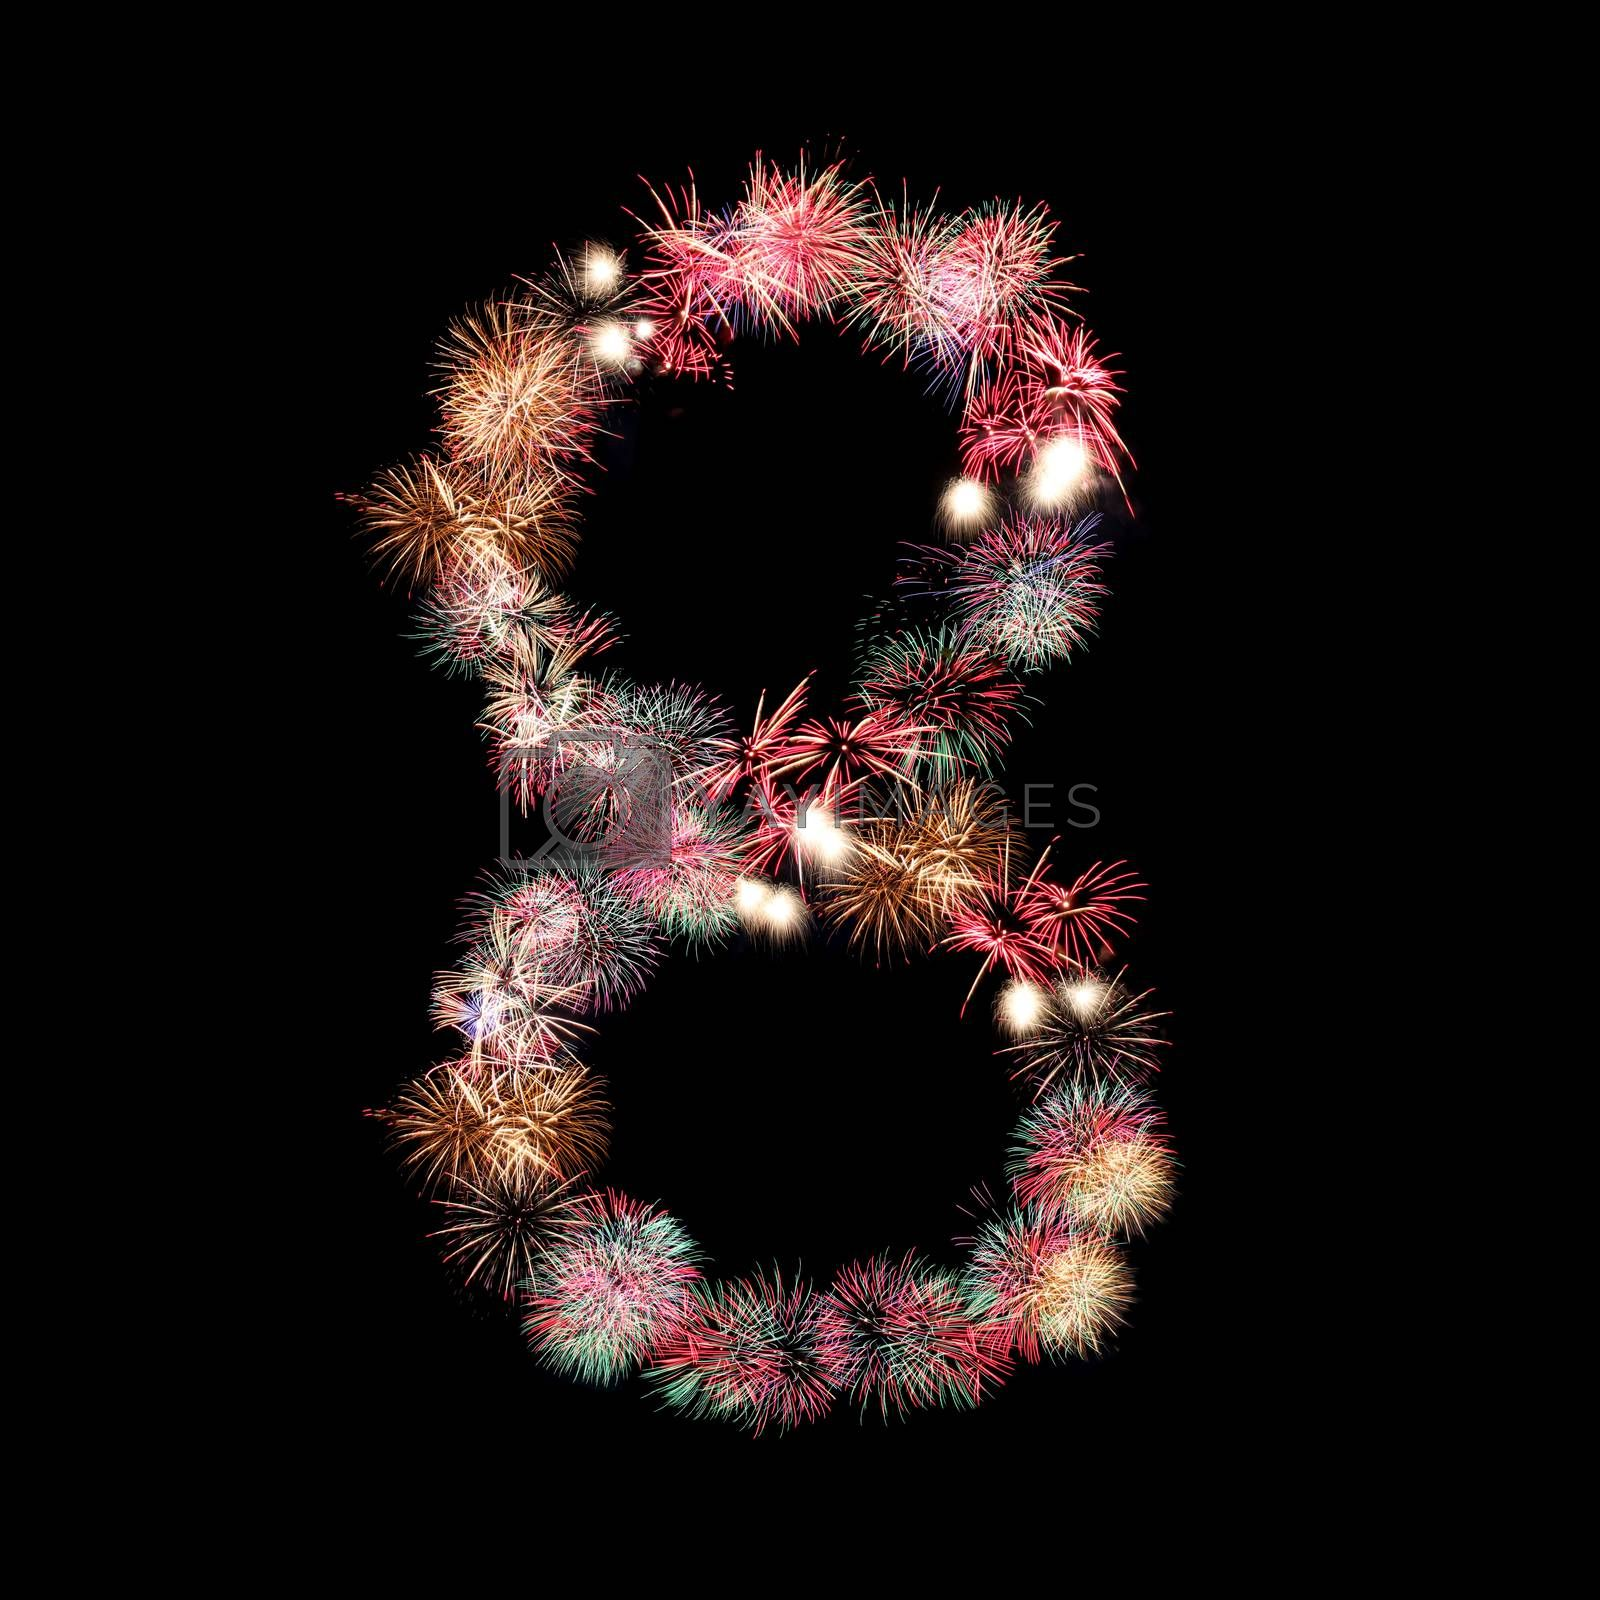 fireworks or firecracker of arrangement to be at number eight.